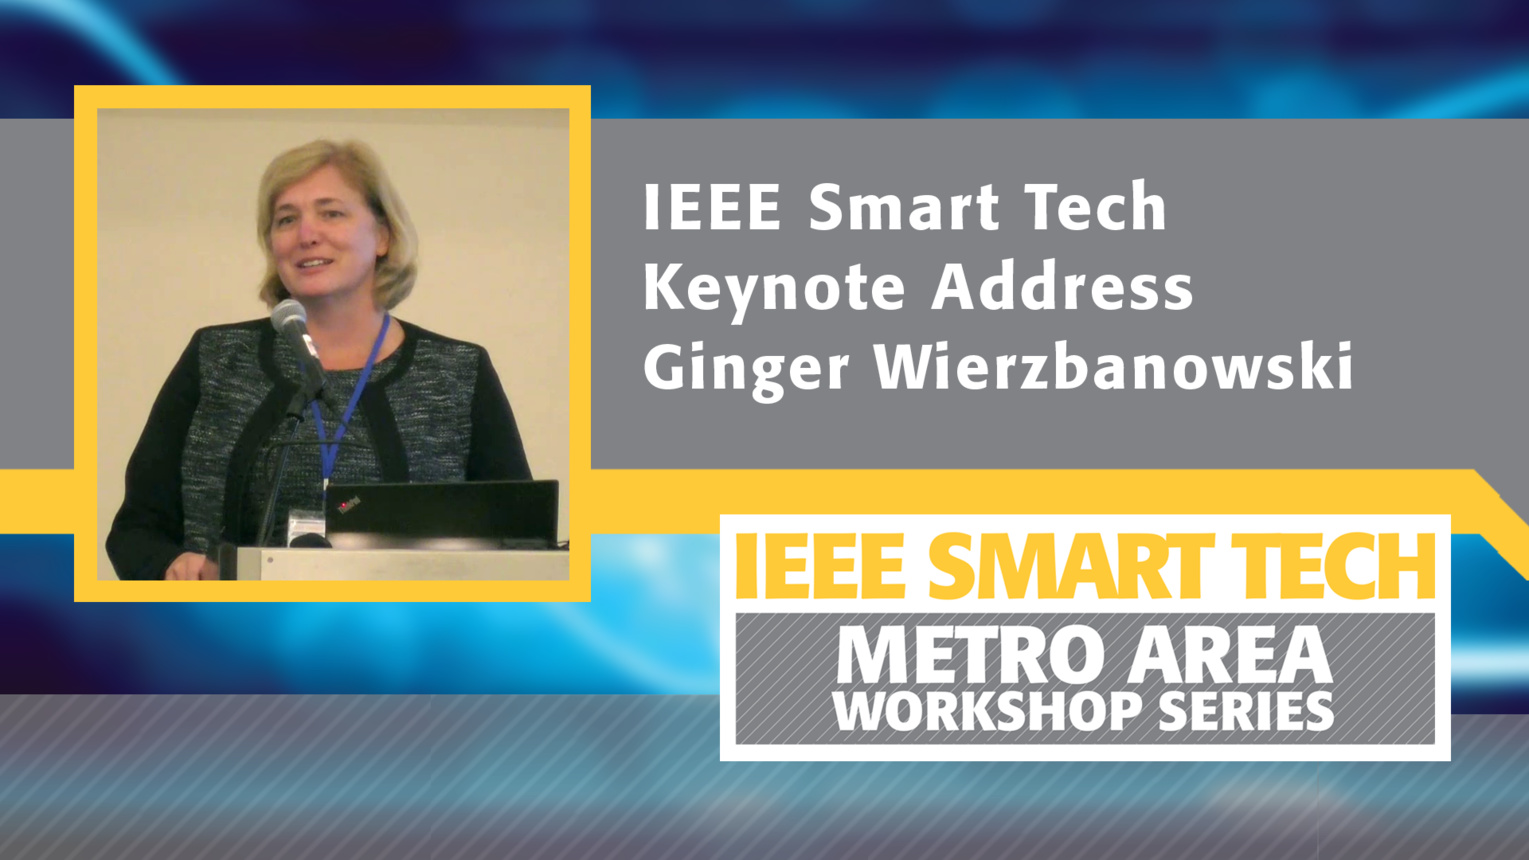 Ginger Wierzbanowski - IEEE Smart Tech Workshop Closing Keynote